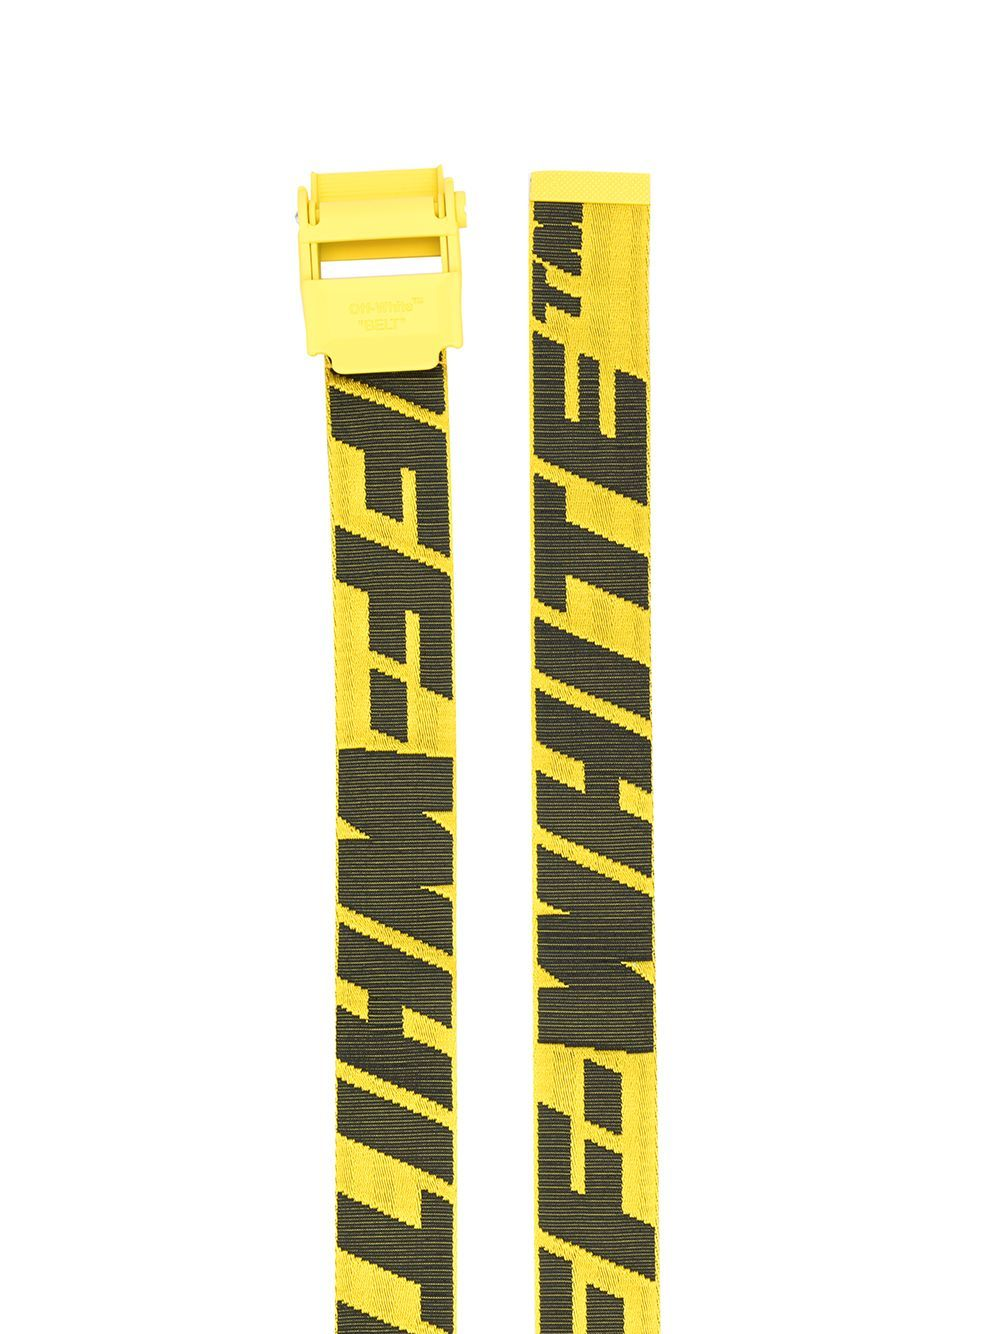 OFF-WHITE 2.0 industrial belt yellow/black